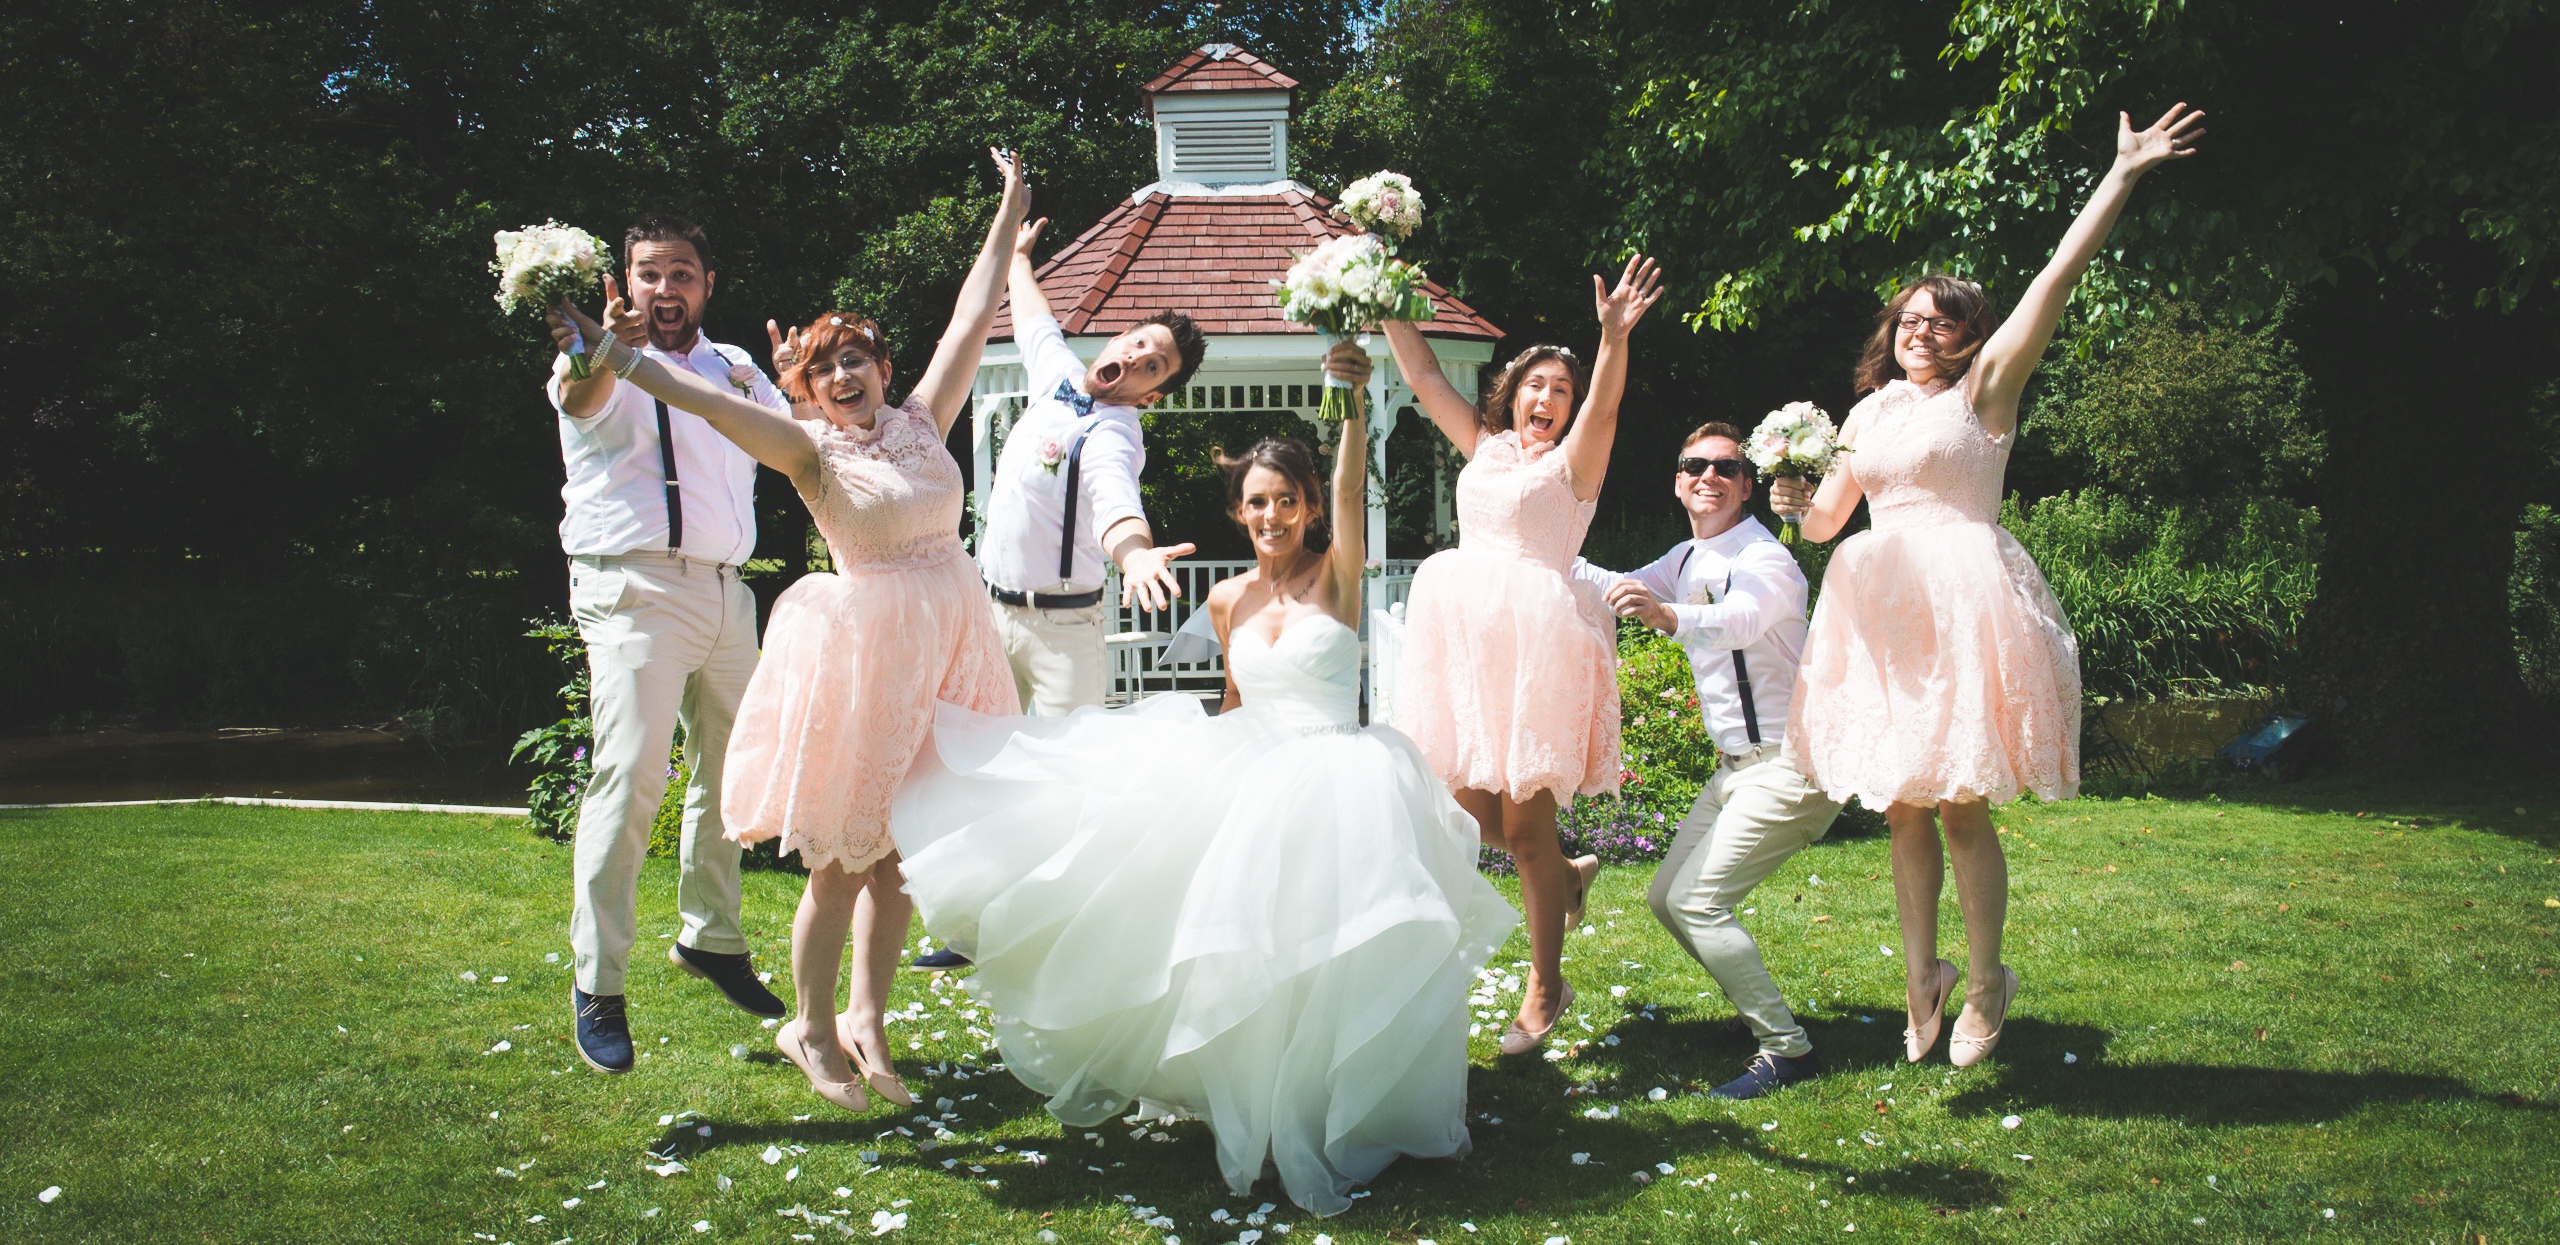 Wedding Party, All Jump Together, Sheene Mill, wedding photographer wedding photography